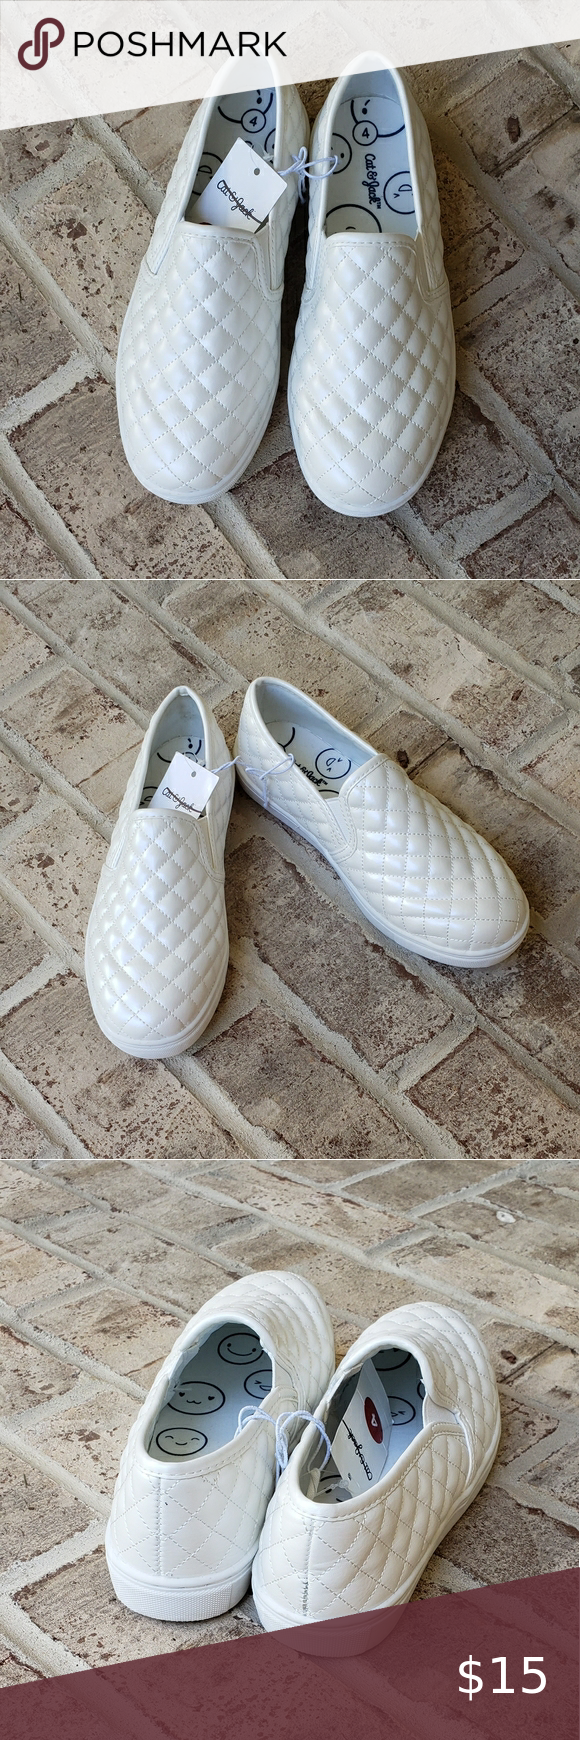 Girls Quilted Sneakers in 2020 | White